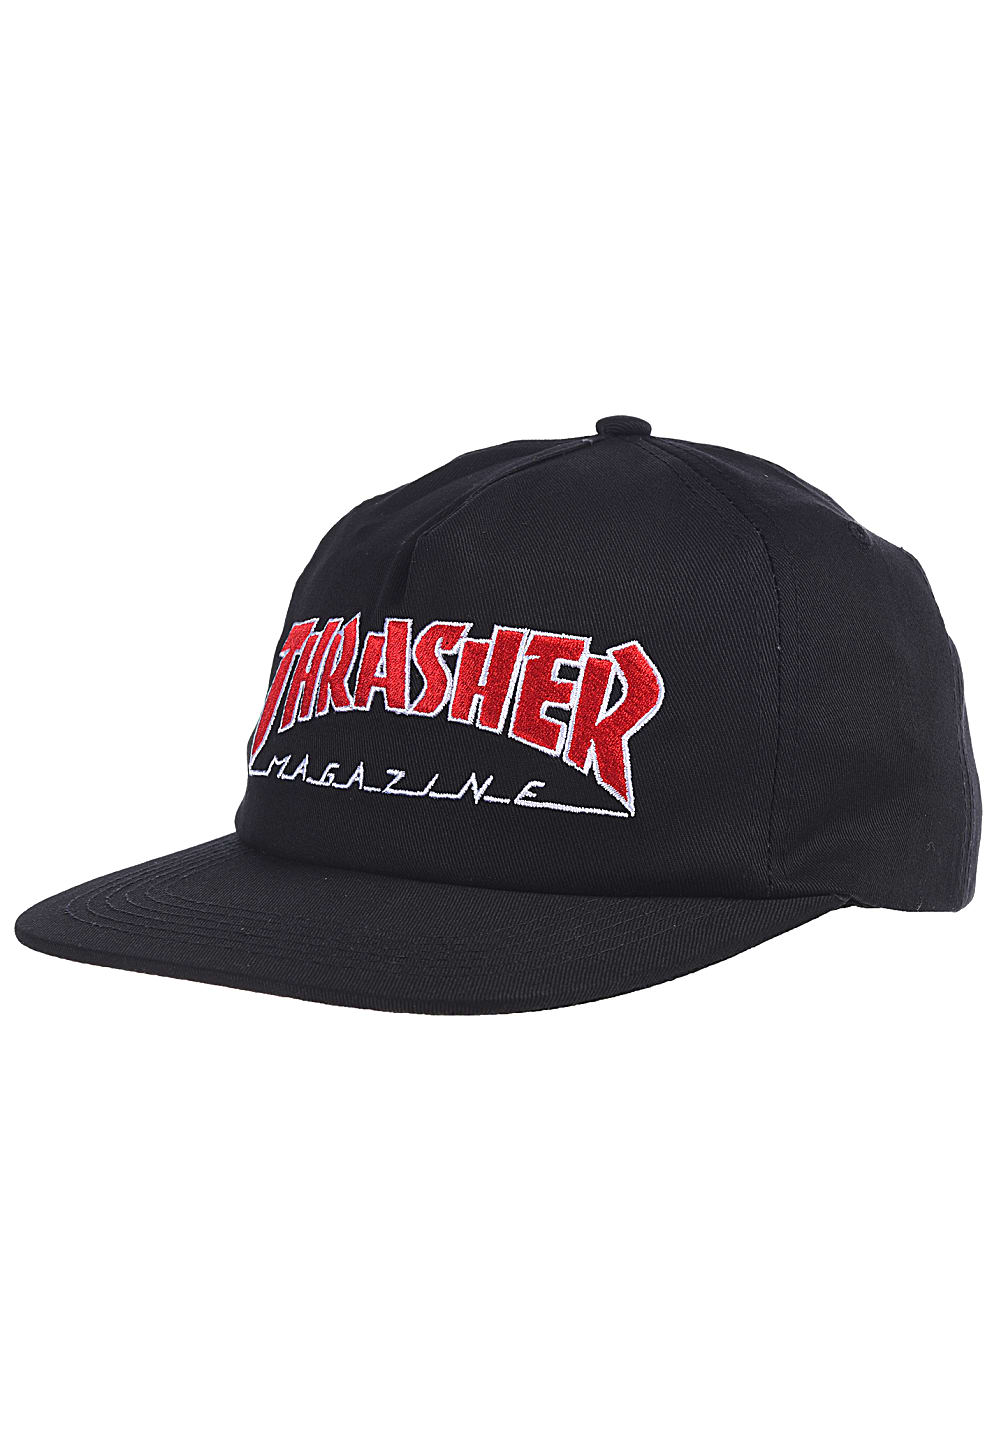 10121636386 THRASHER Outlined - Snapback Cap - Black - Planet Sports